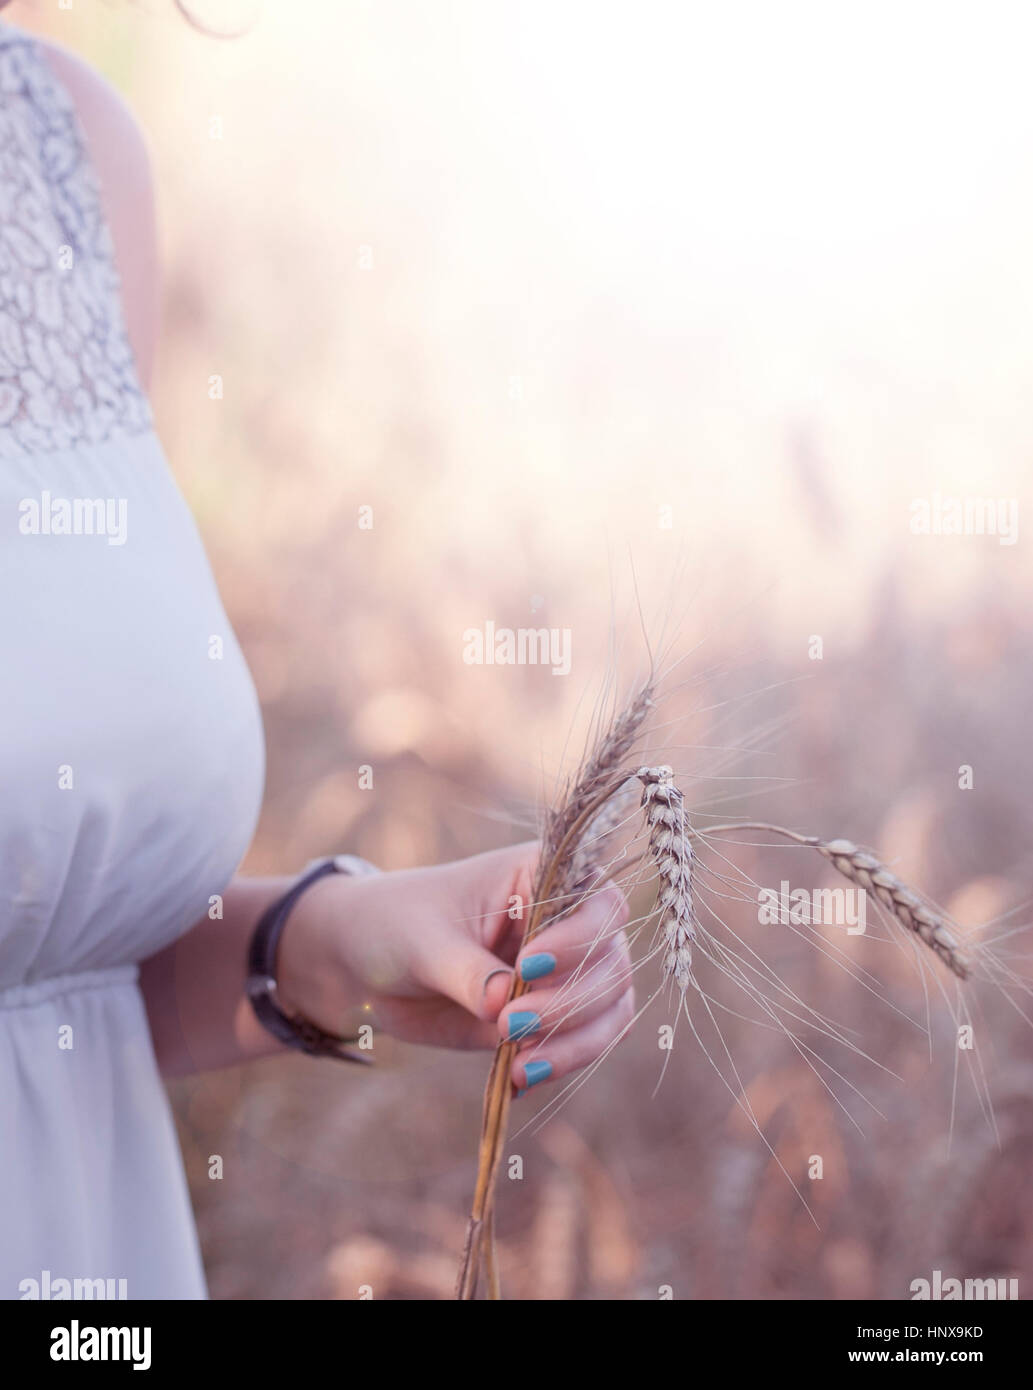 Woman with wheat in hand - Stock Image